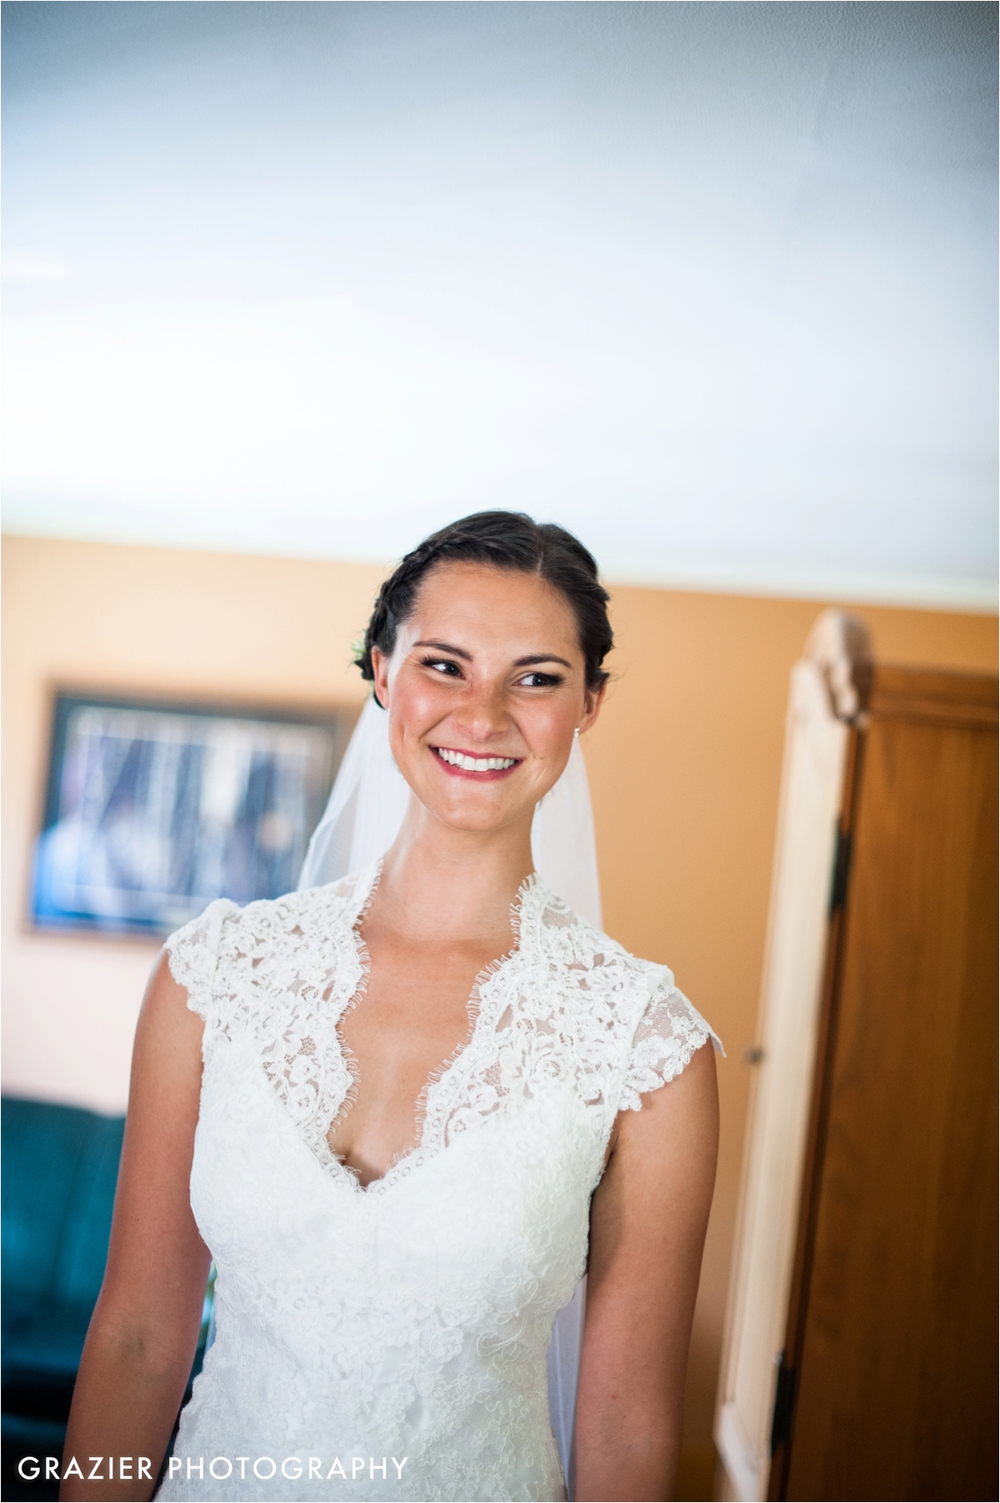 Whitneys-Inn-Jackson-New-Hampshire-Wedding-Grazier-Photography-WEB_0006.jpg